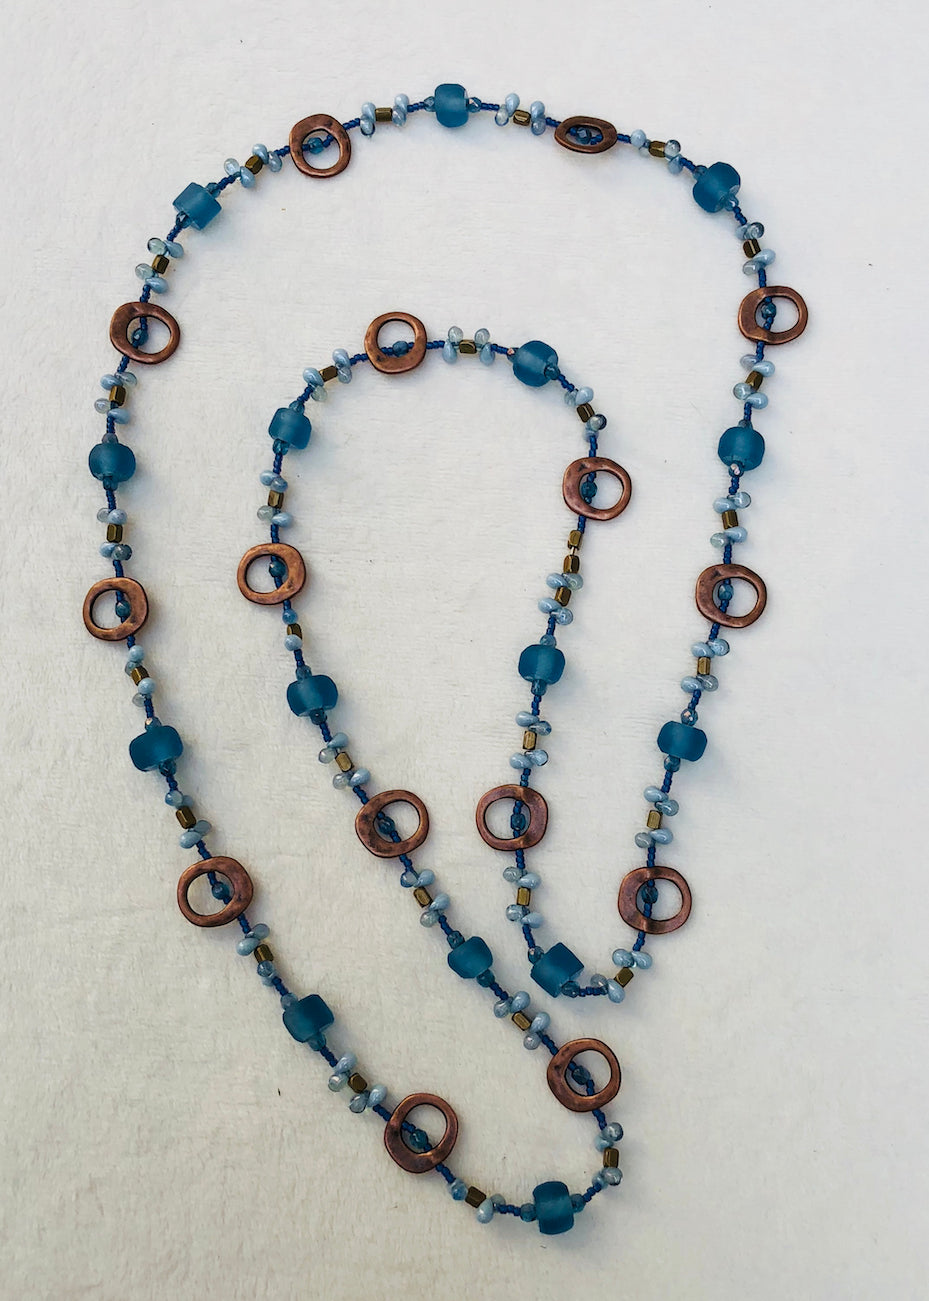 Brushed Copper Metal Frames with Recycled Glass Long Necklace ...